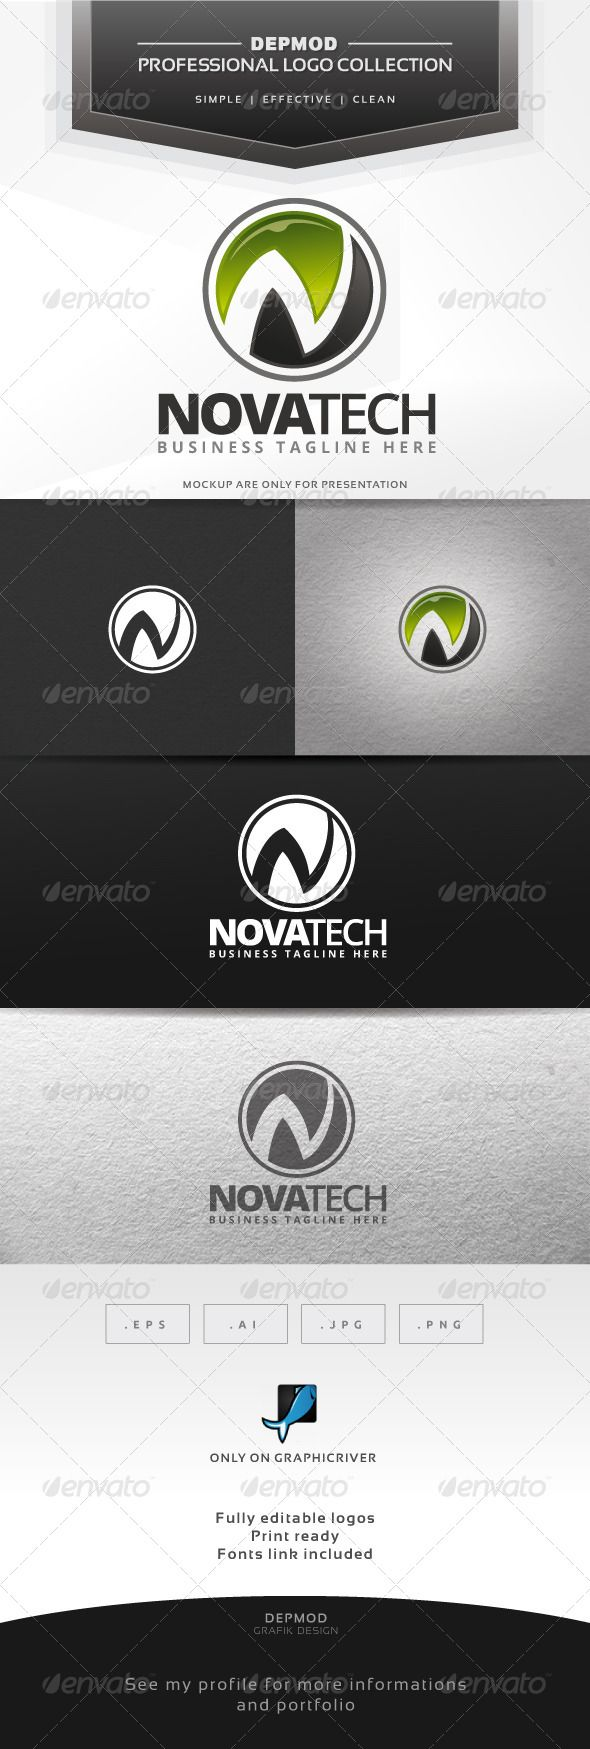 12 best STAR LOGOS images on Pinterest | Star logo, Logo designing ...